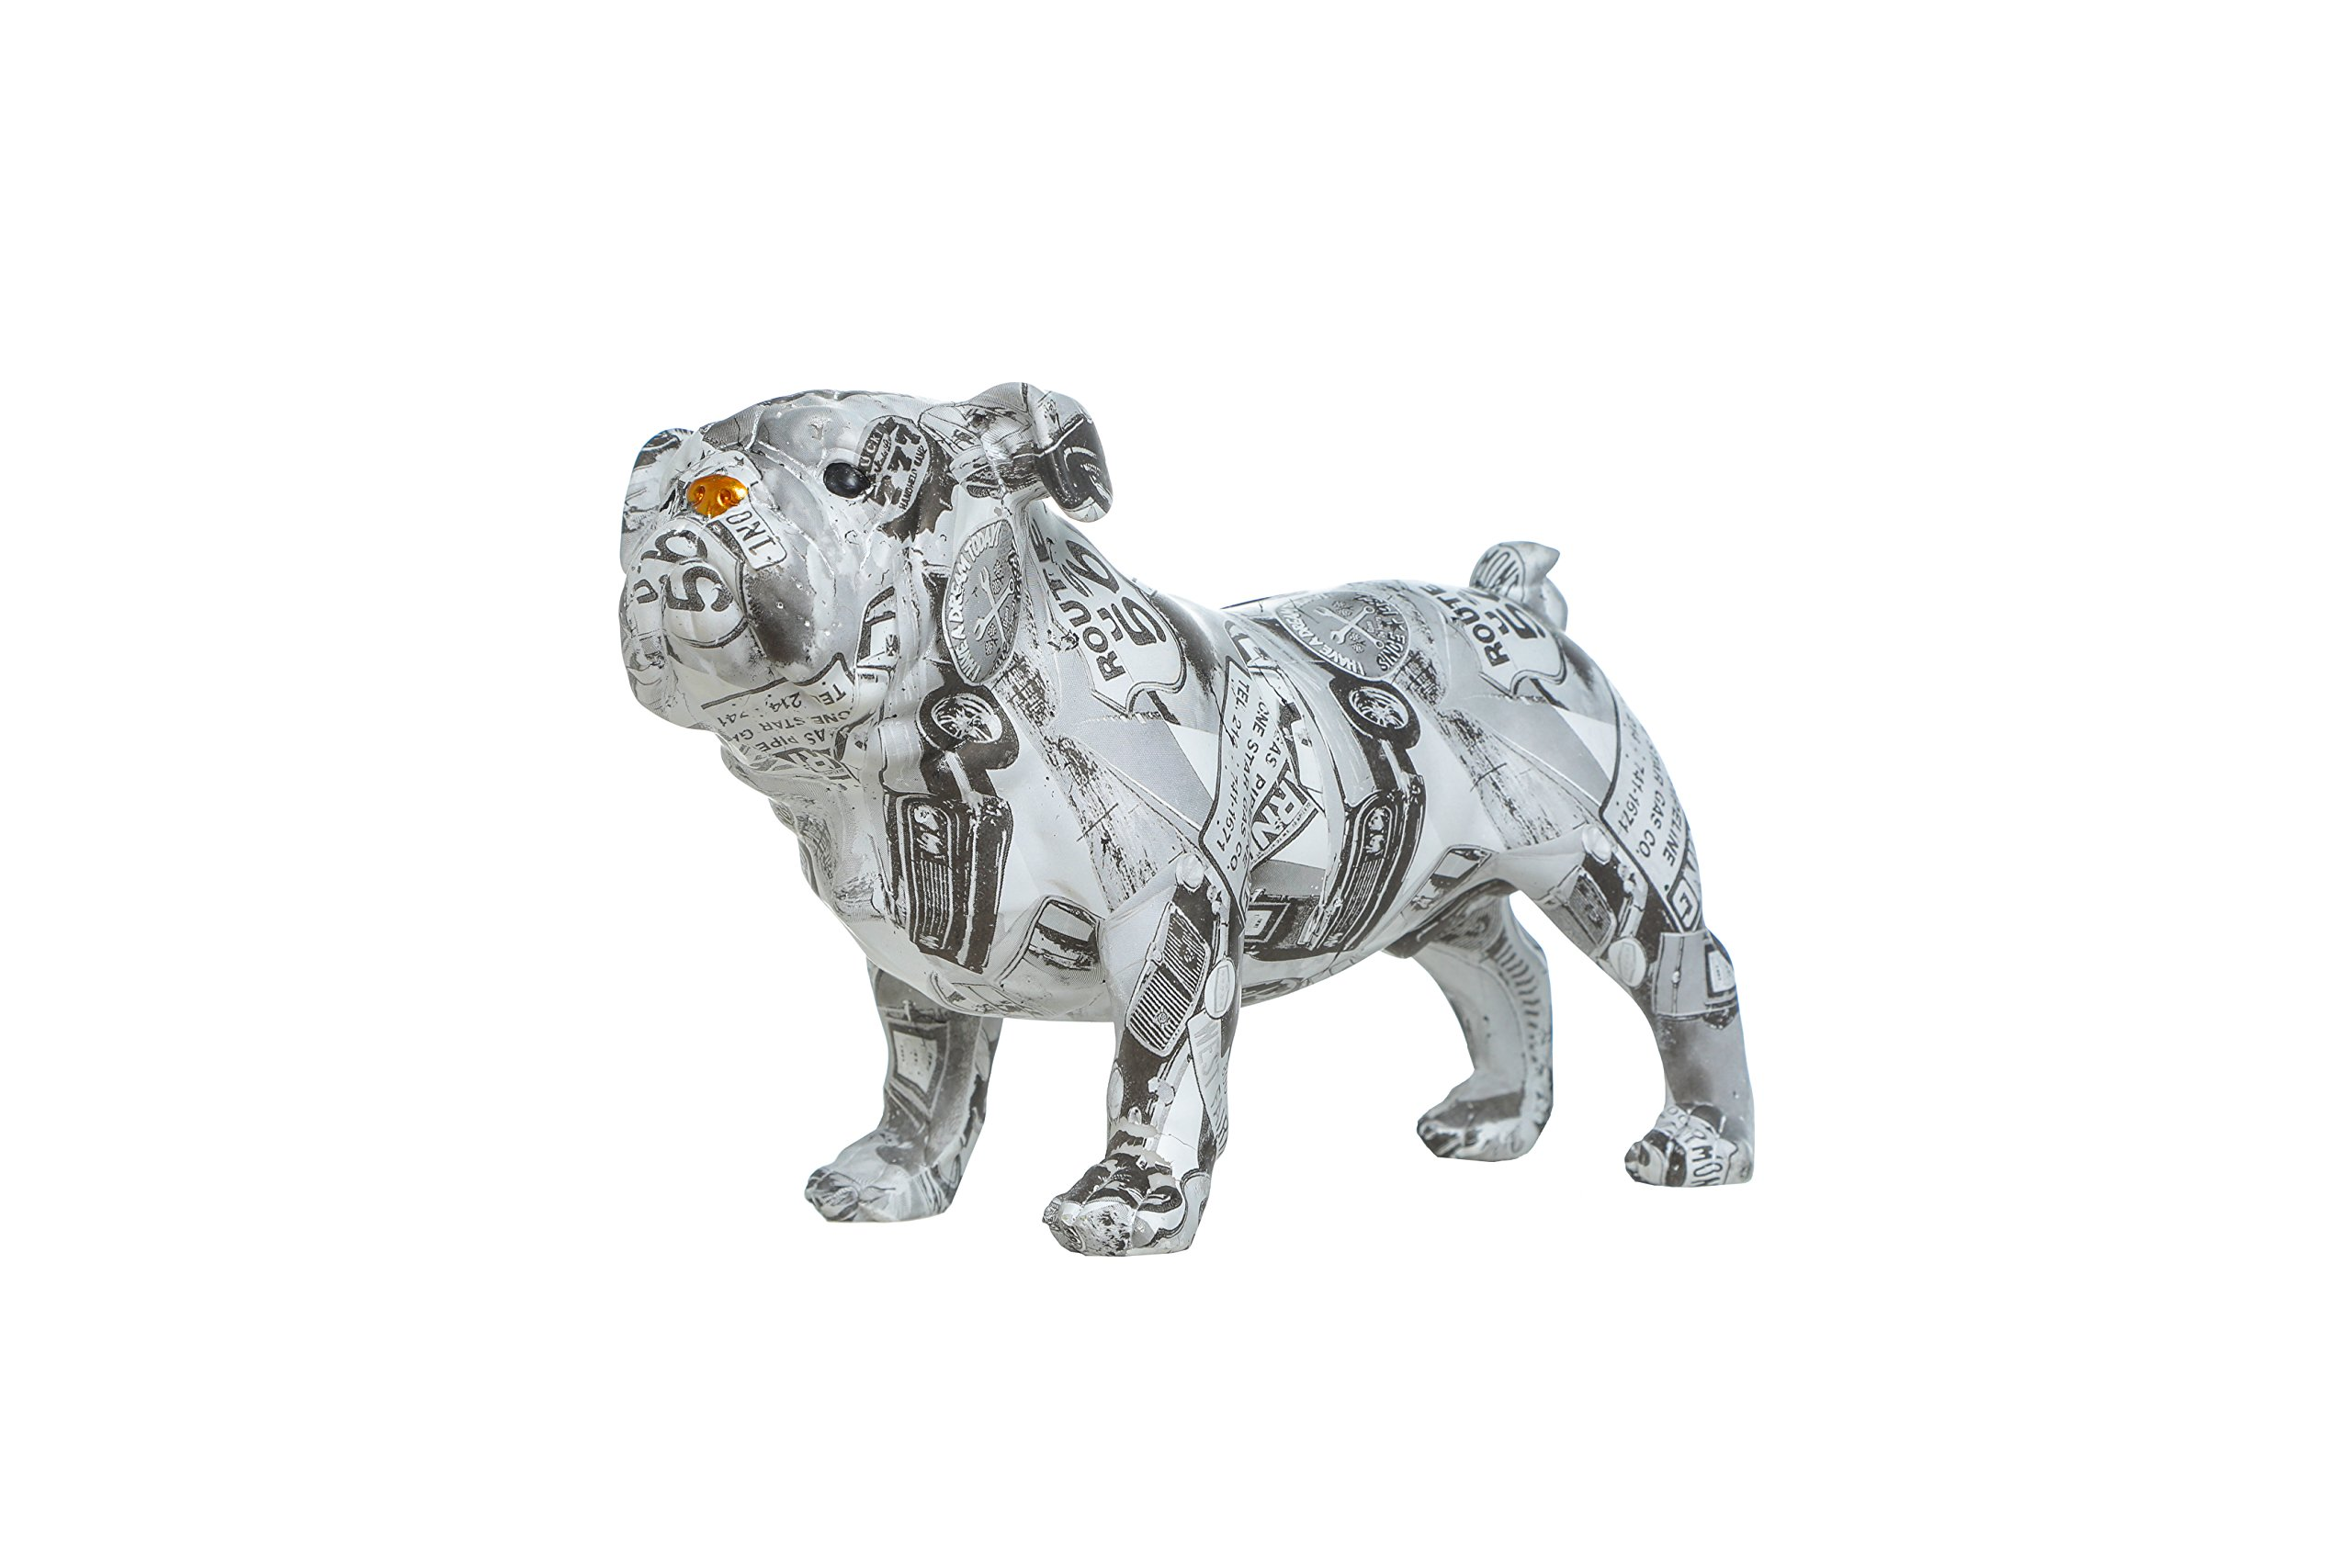 Interior Illusions Plus ii00411 Piggy, Coin Bank, Home Décor, Black/White/Gold